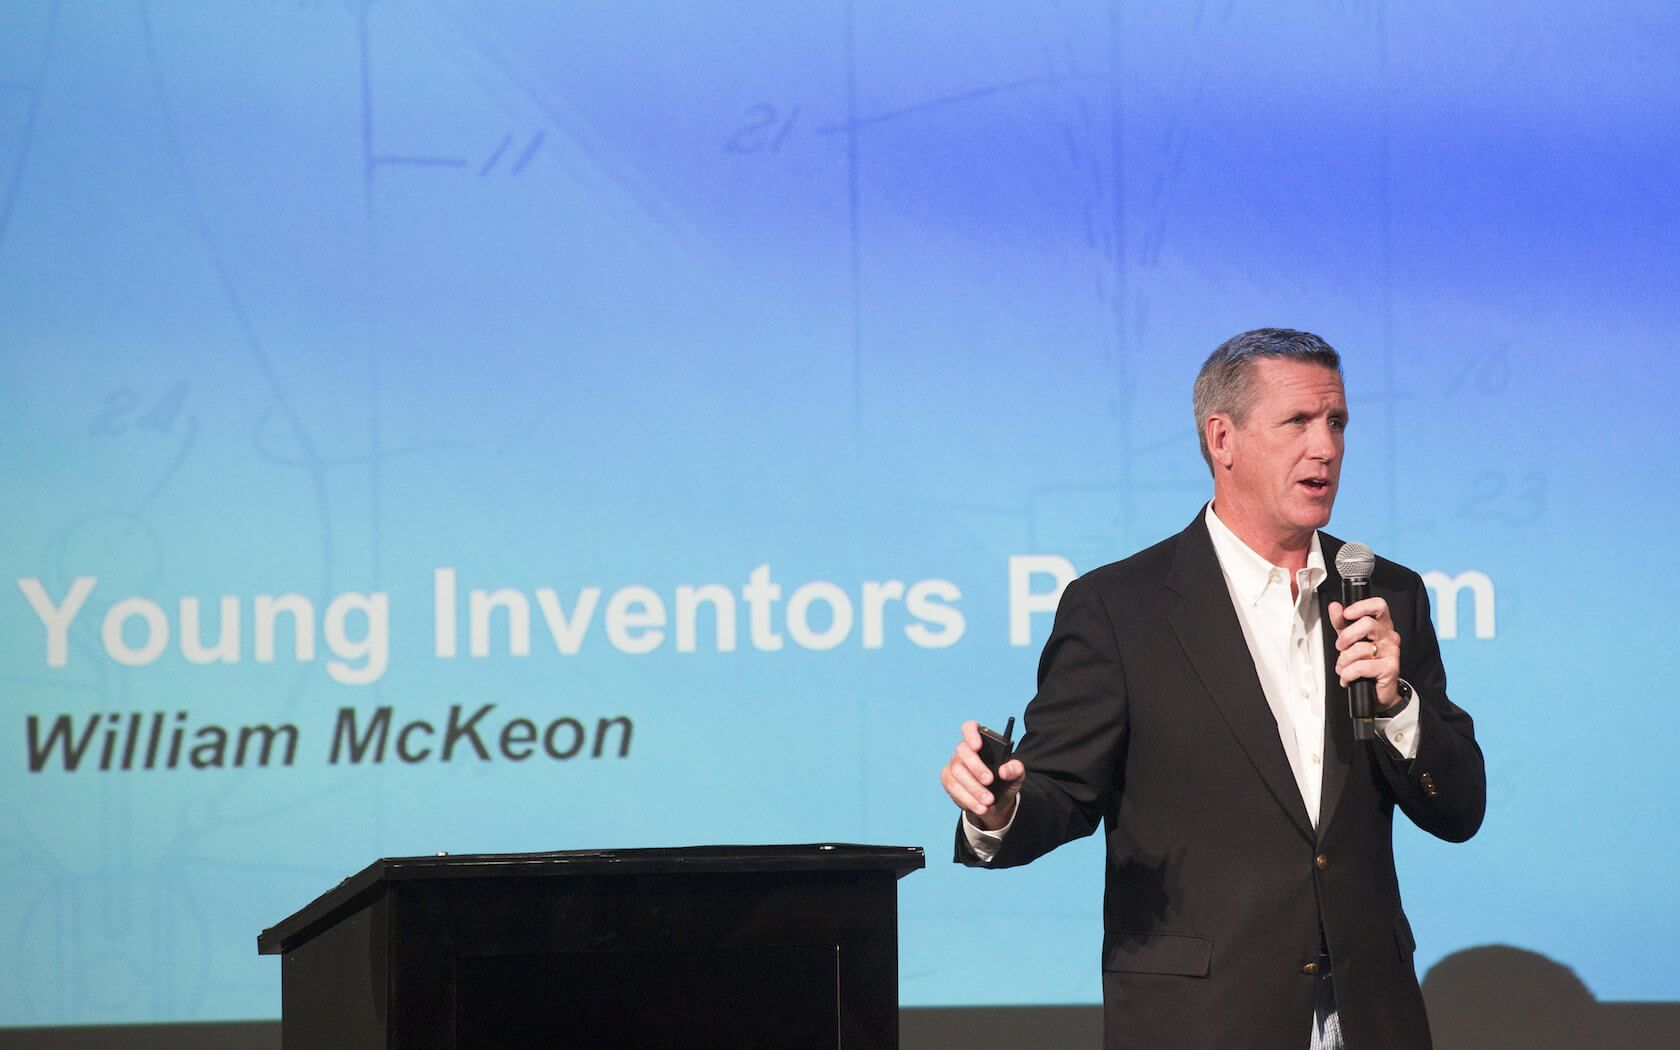 William McKeon, TMC Young Inventors, British International School of Houston